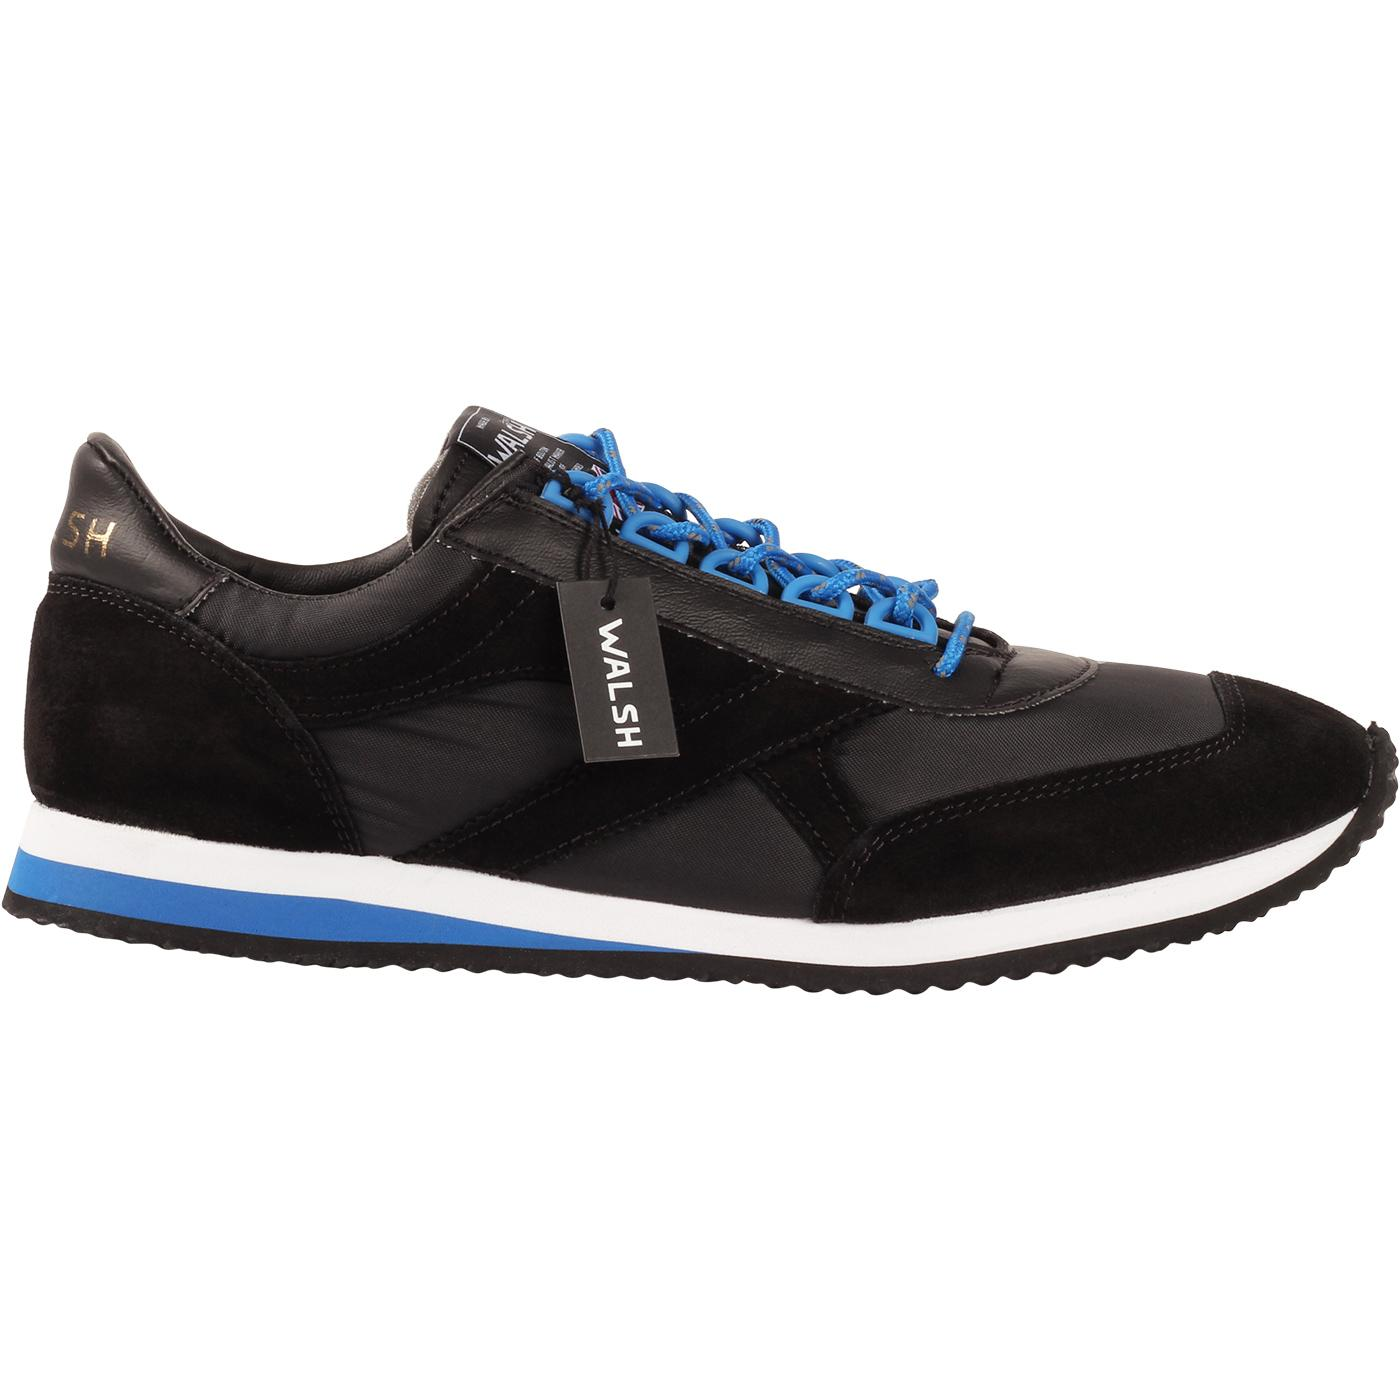 Voyager WALSH Made in England Trainers BLACK/BLUE